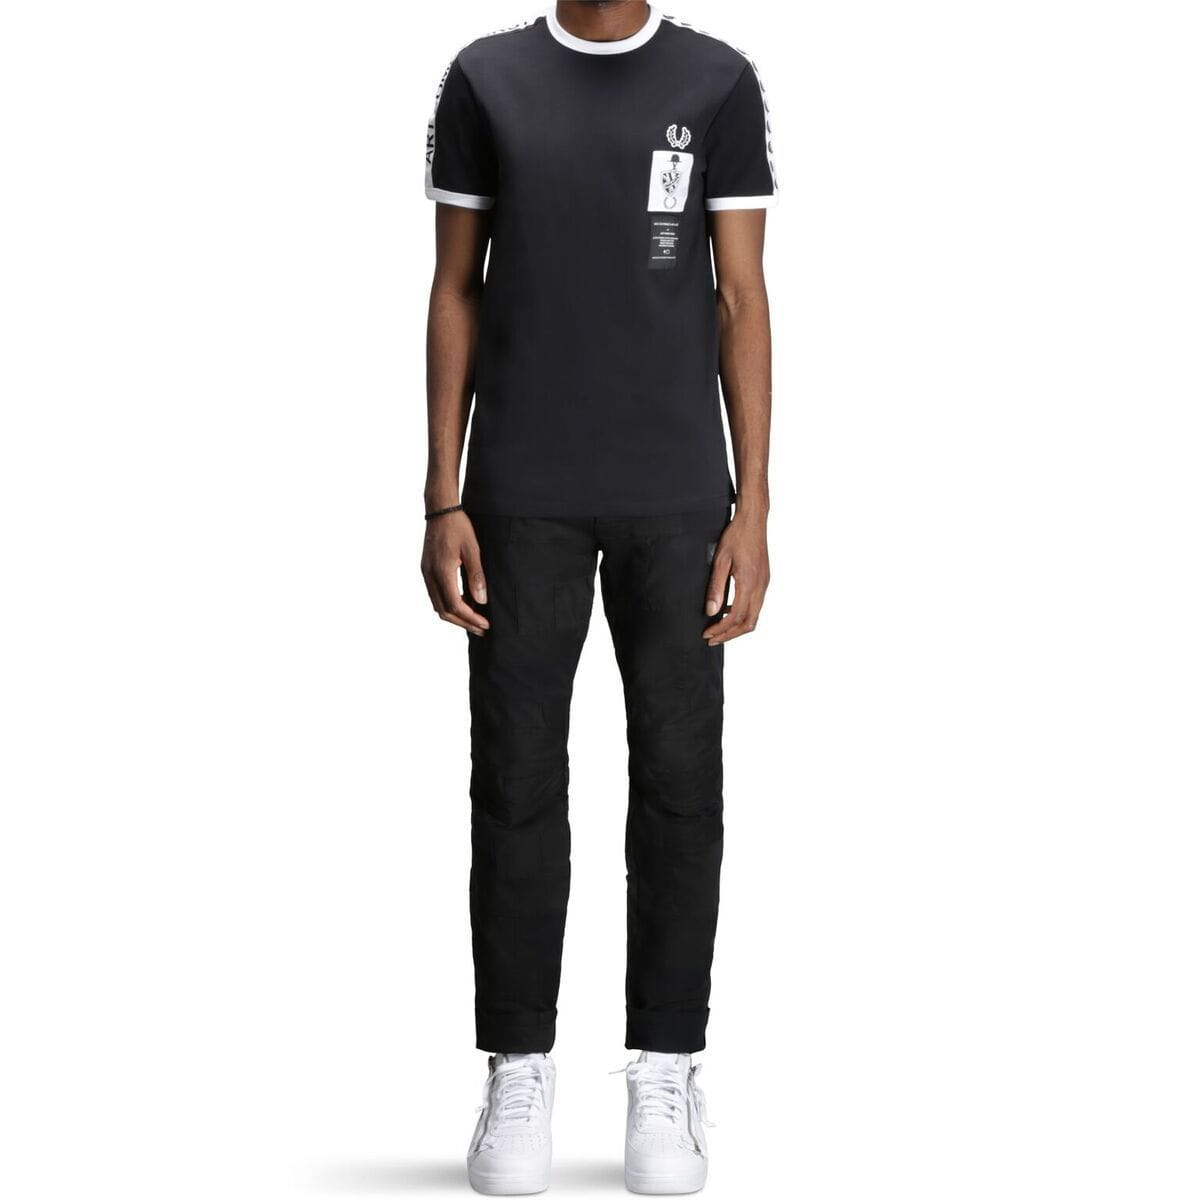 346317e4 Fred Perry X ART COMES FIRST RINGER T-SHIRT (Black)